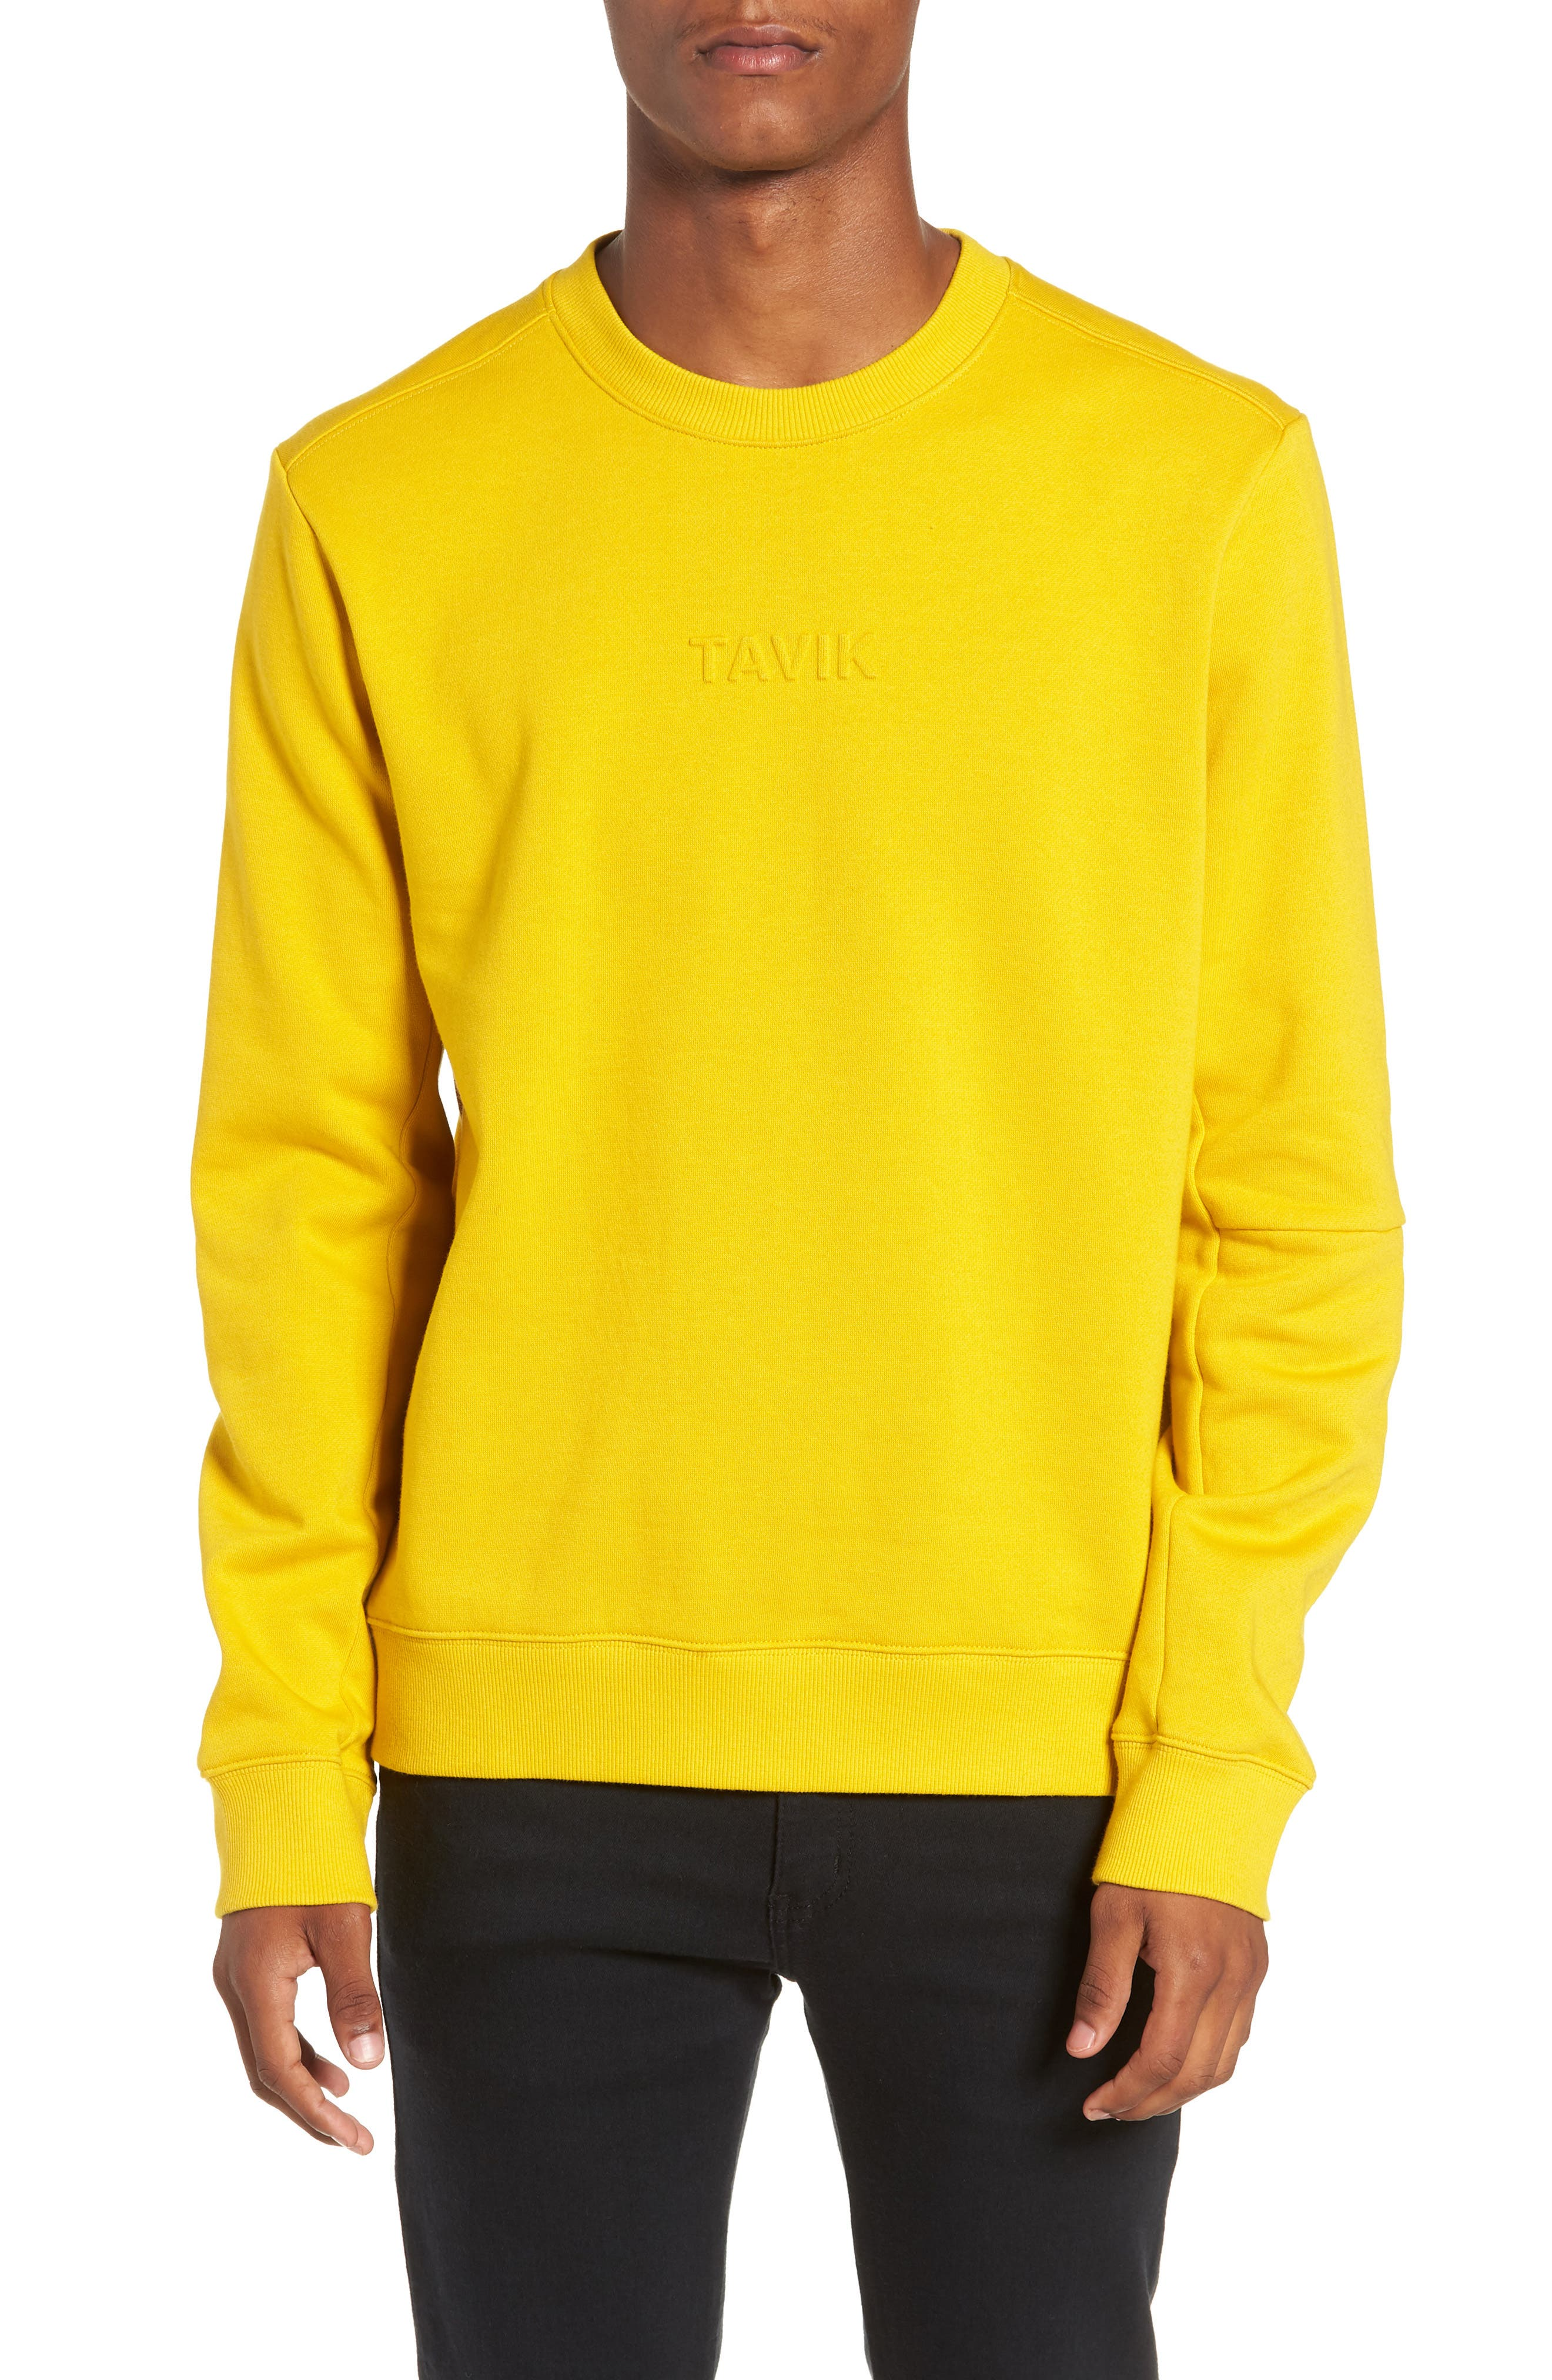 Loma Sweatshirt,                             Main thumbnail 1, color,                             MUSTARD YELLOW